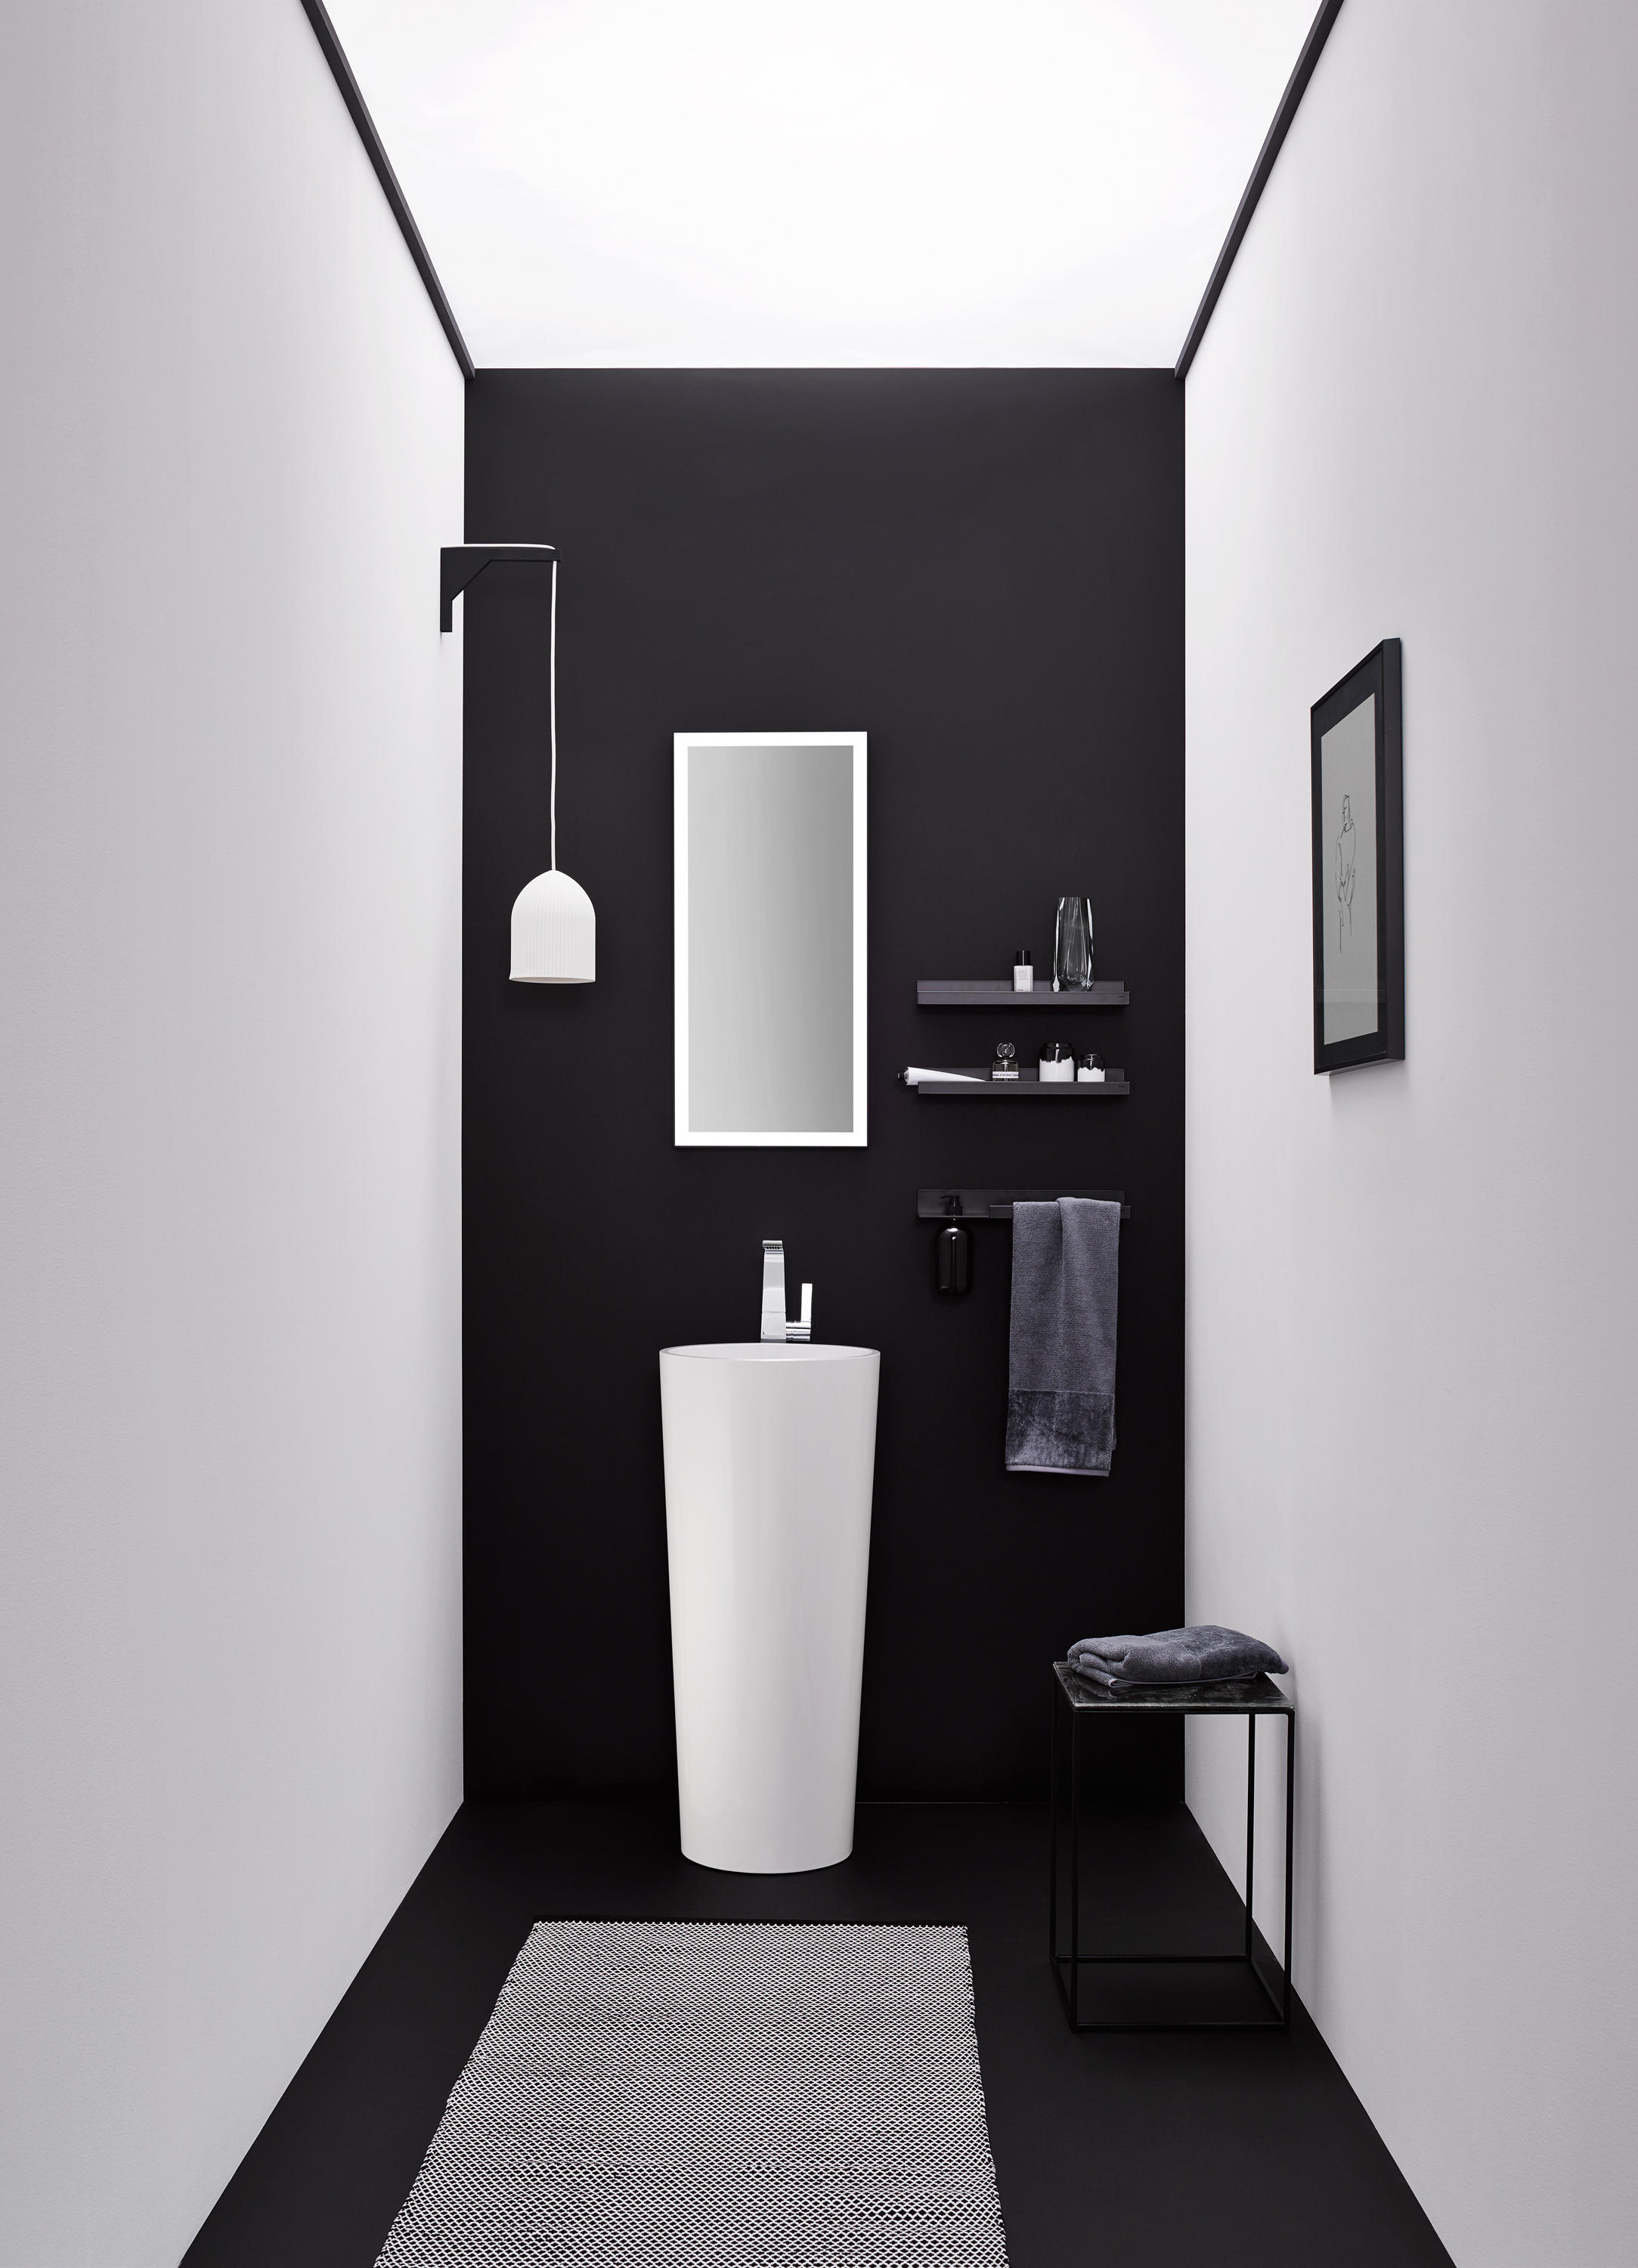 Design Spiegel Sp Fr375 S1 Mirrors From Alape Architonic